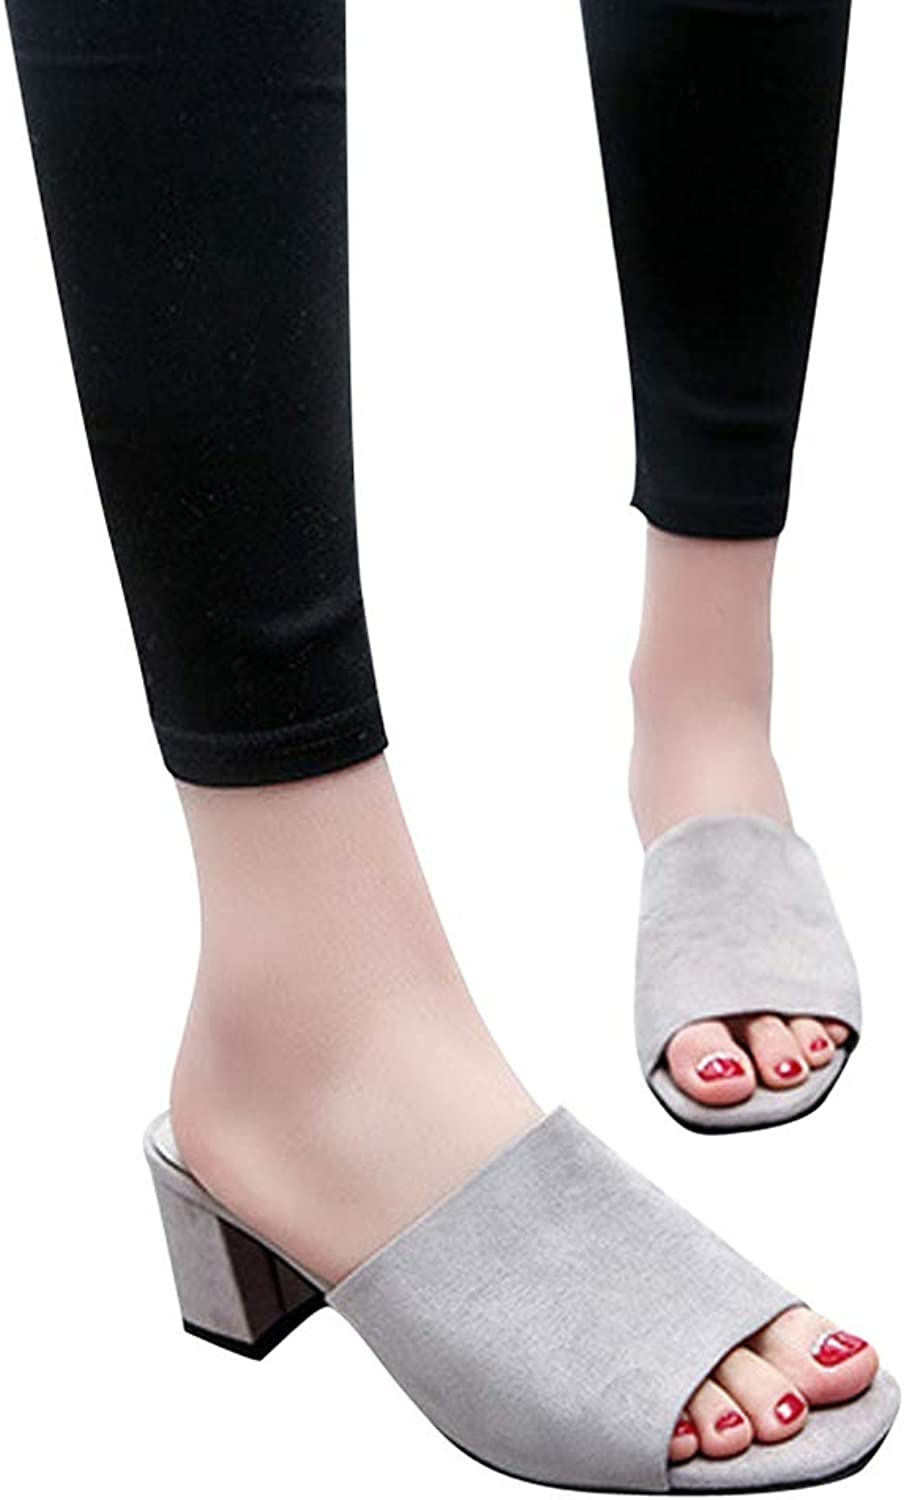 Btrada Summer Platform Open Toes Women Fashion Square Toe shoes Wedges High Heel Fish Mouth Slippers